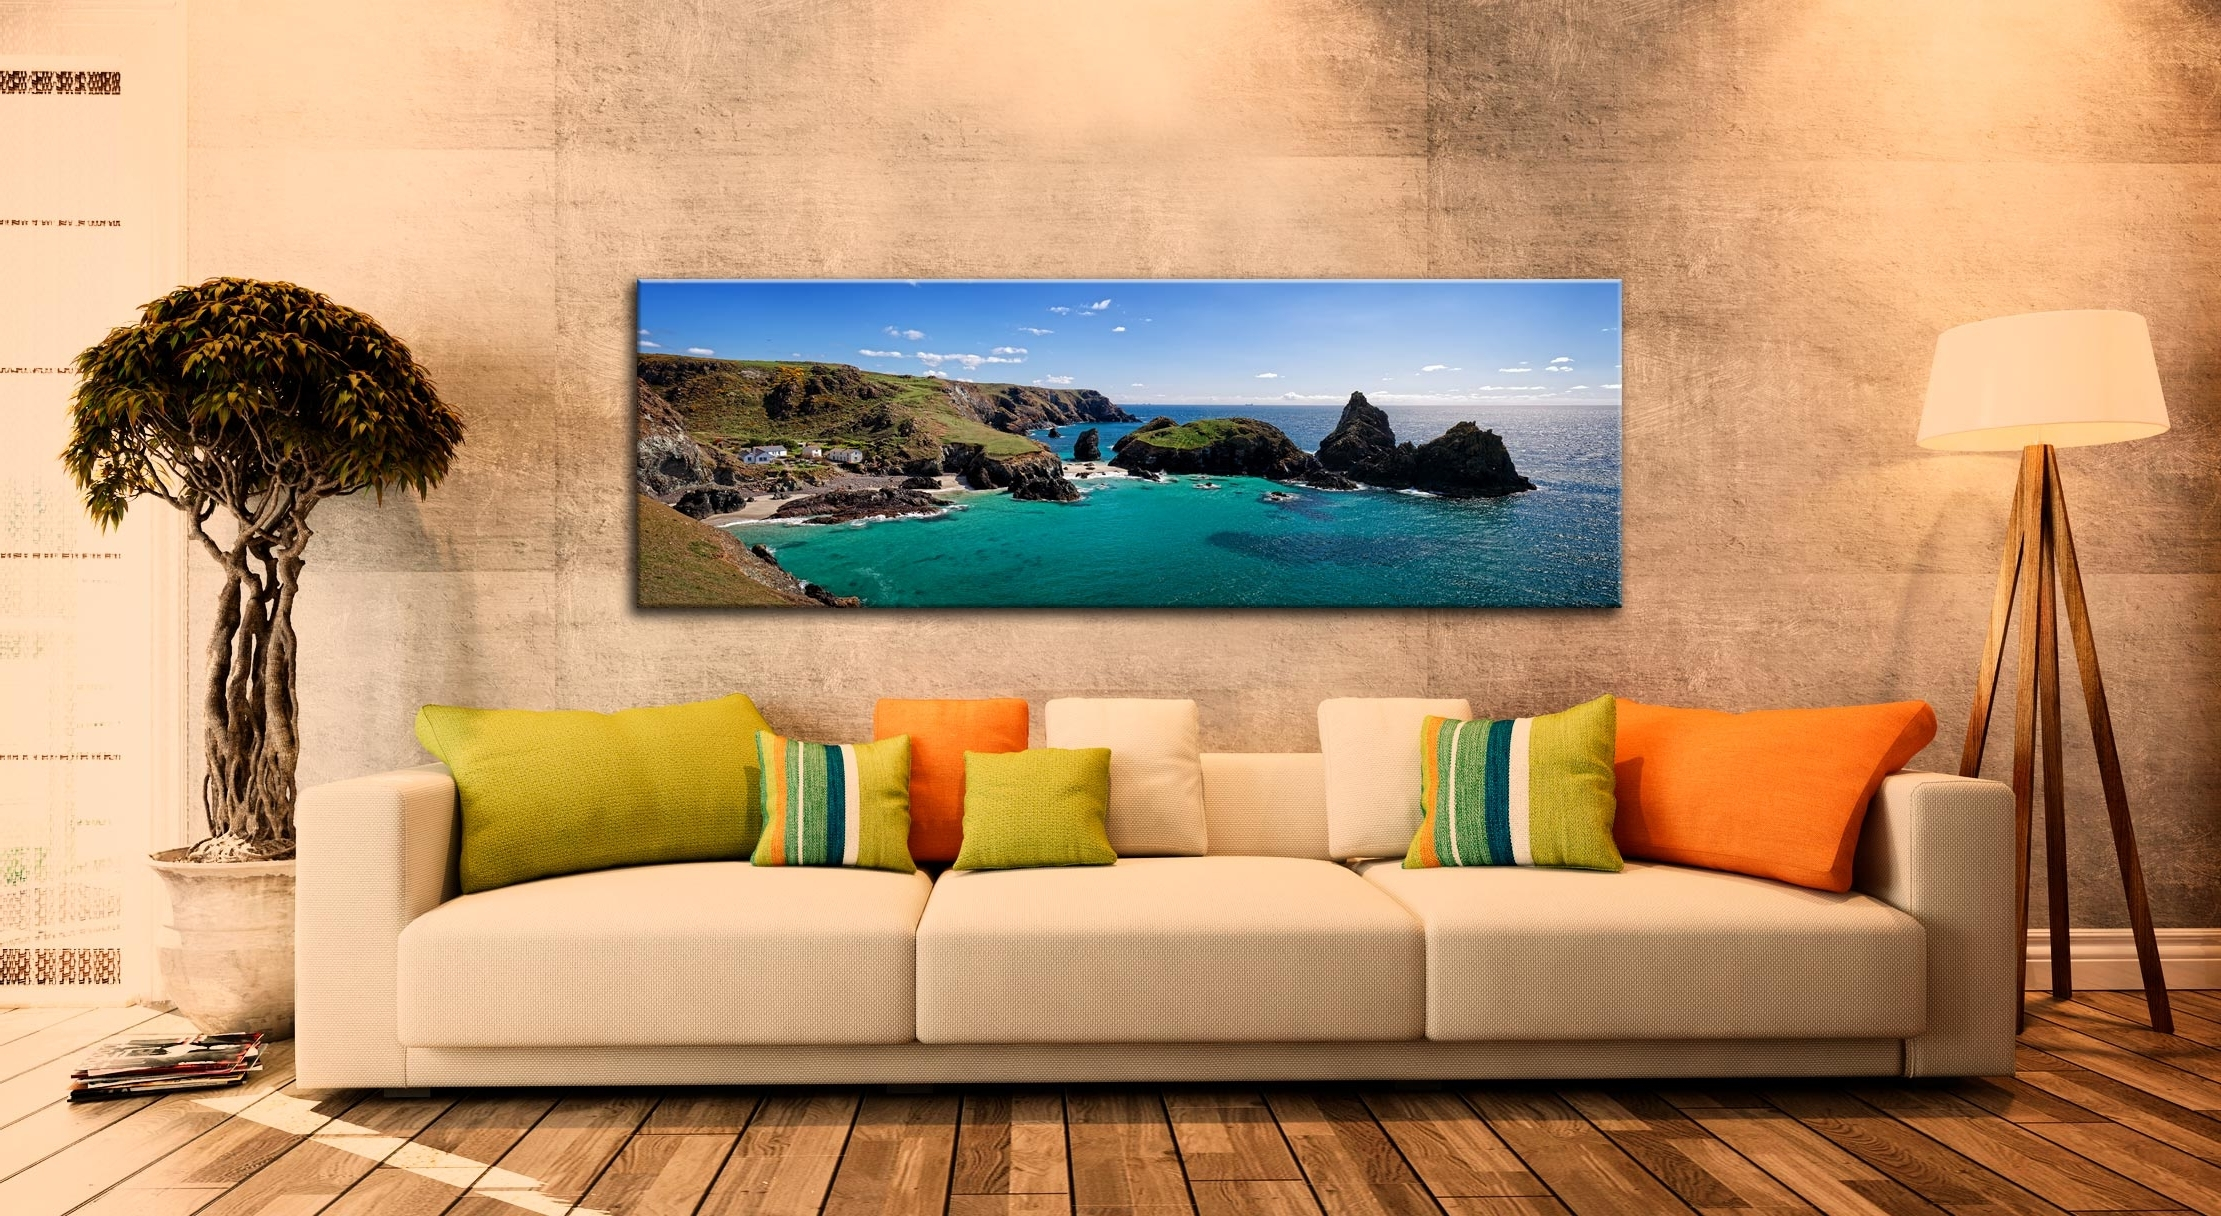 Kynance Cove Panorama – Cornwall Canvas In Best And Newest Panoramic Canvas Wall Art (View 5 of 15)